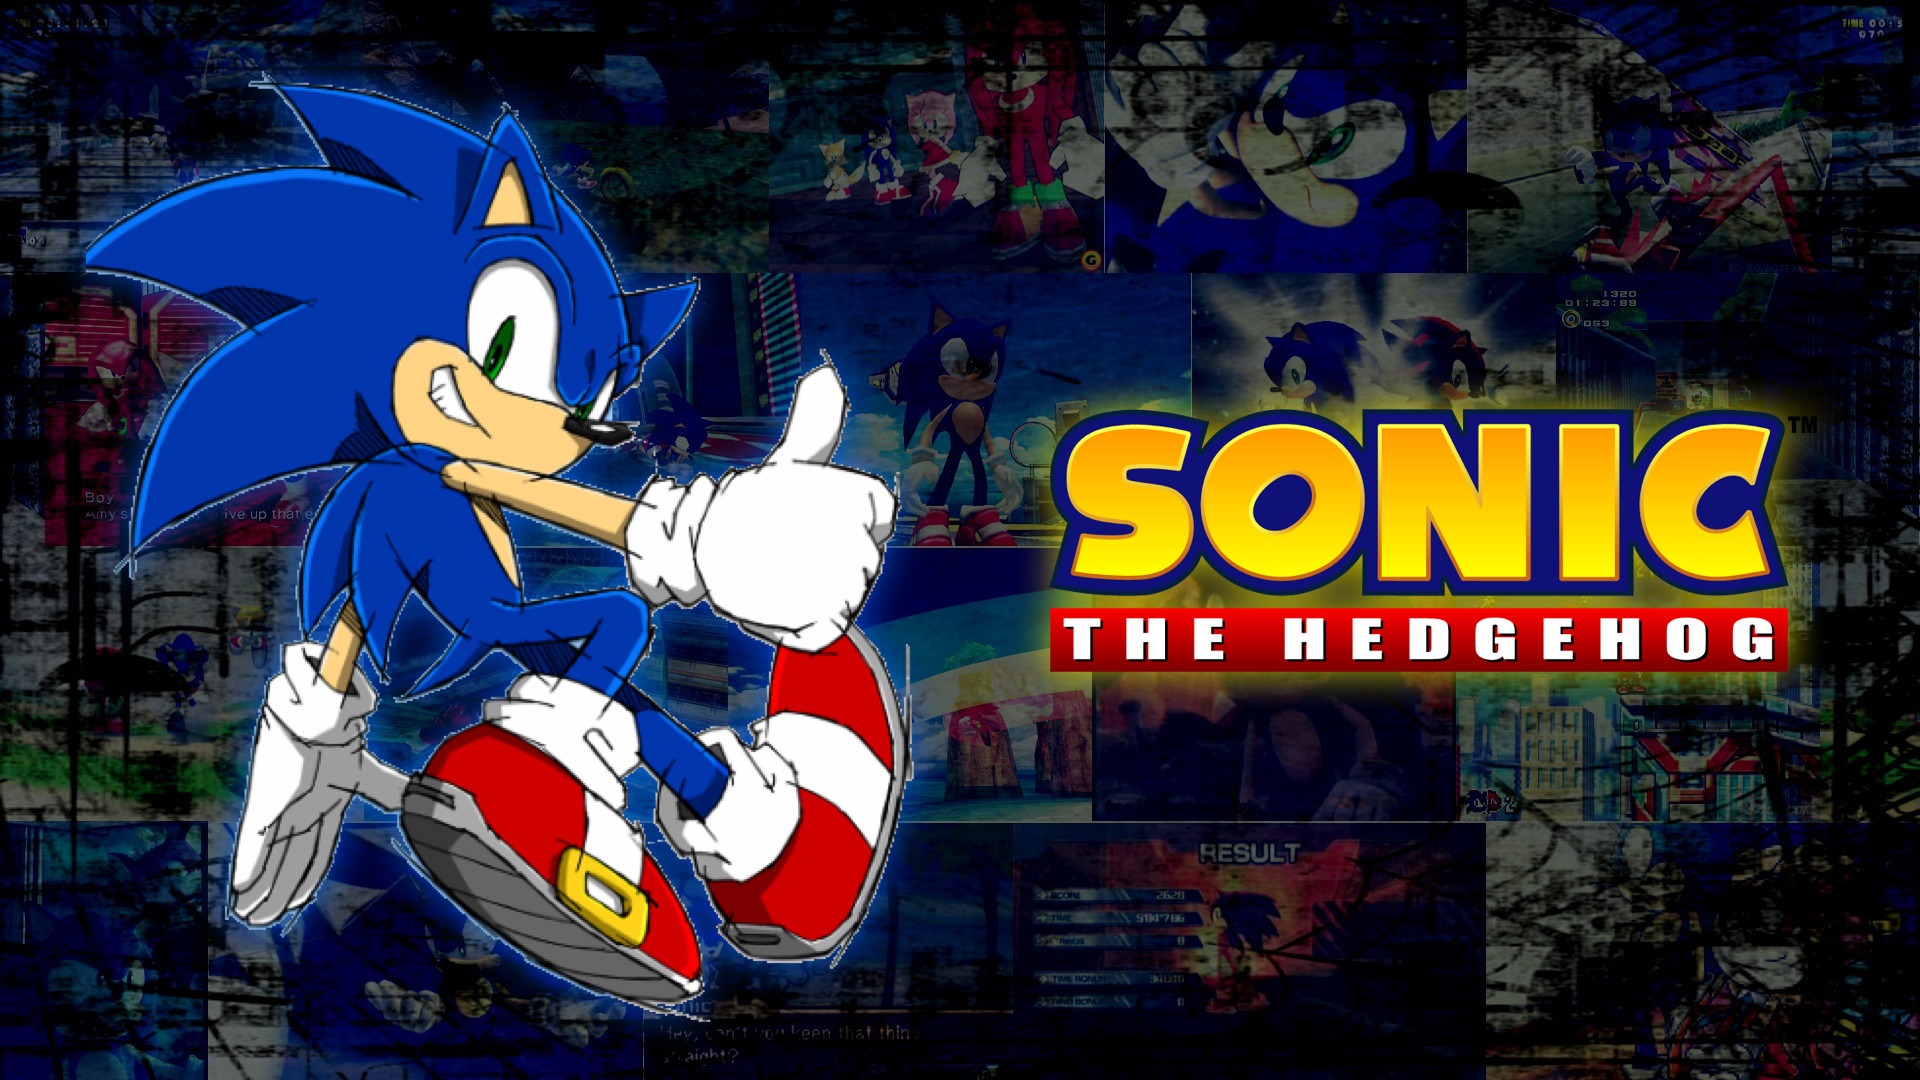 1920x1080 Sonic | Sonic Images, Pictures, Wallpapers on NMgnCP